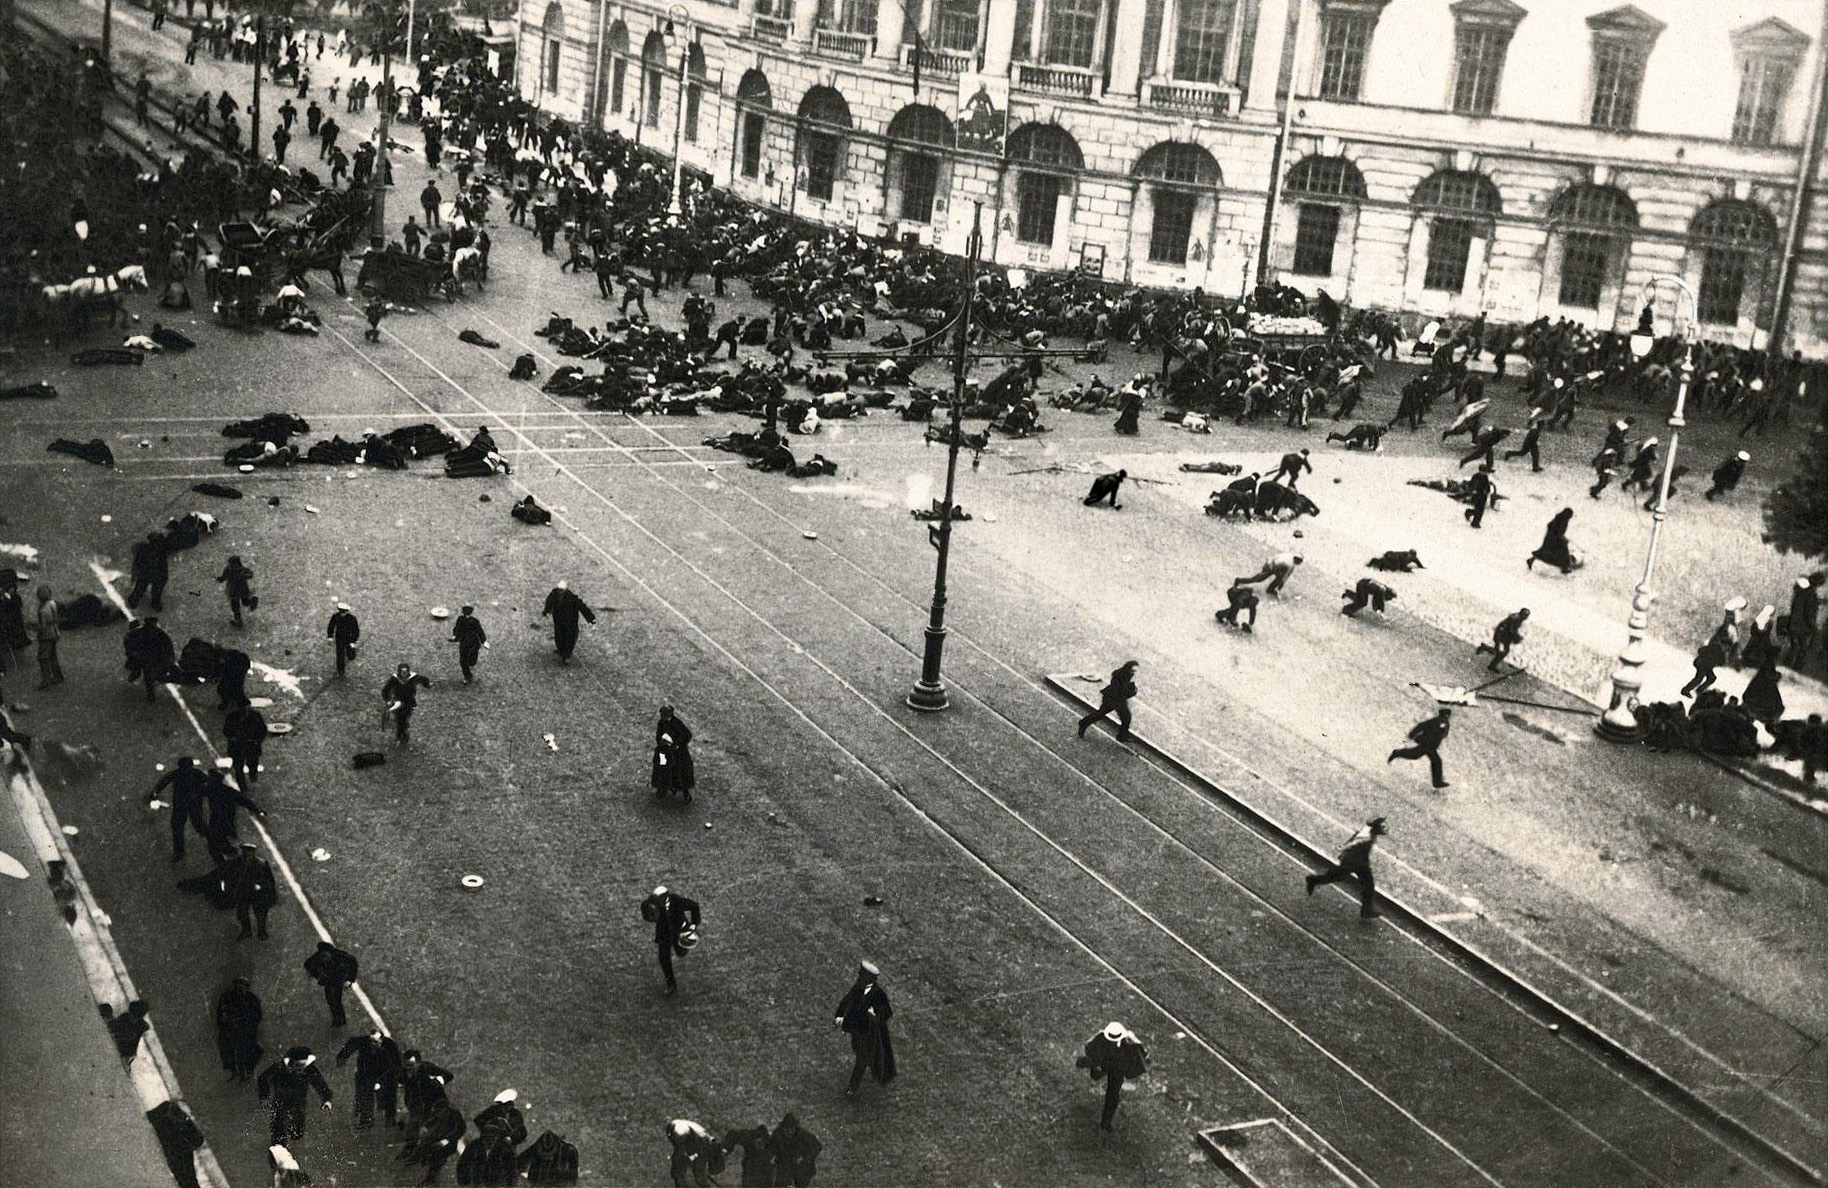 Petrograd (Saint Petersburg), July 4, 1917. Street demonstration on Nevsky Prospekt just after troops of the Provisional Government have opened fire with machine guns.